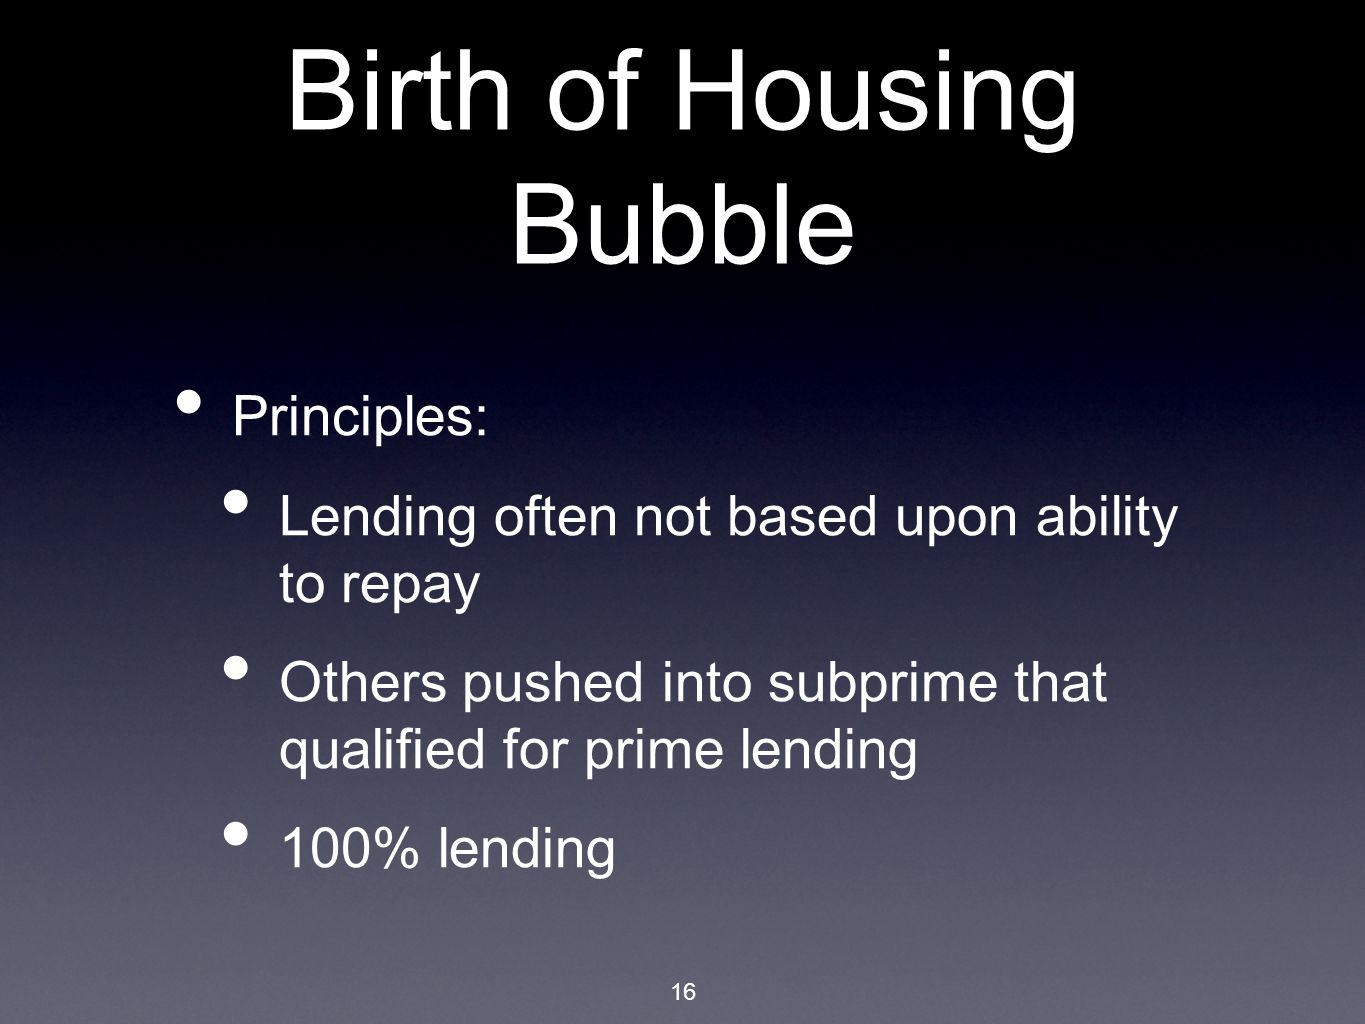 16 Birth of Housing Bubble Principles: Lending often not based upon ability to repay Others pushed into subprime that qualified for prime lending 100% lending